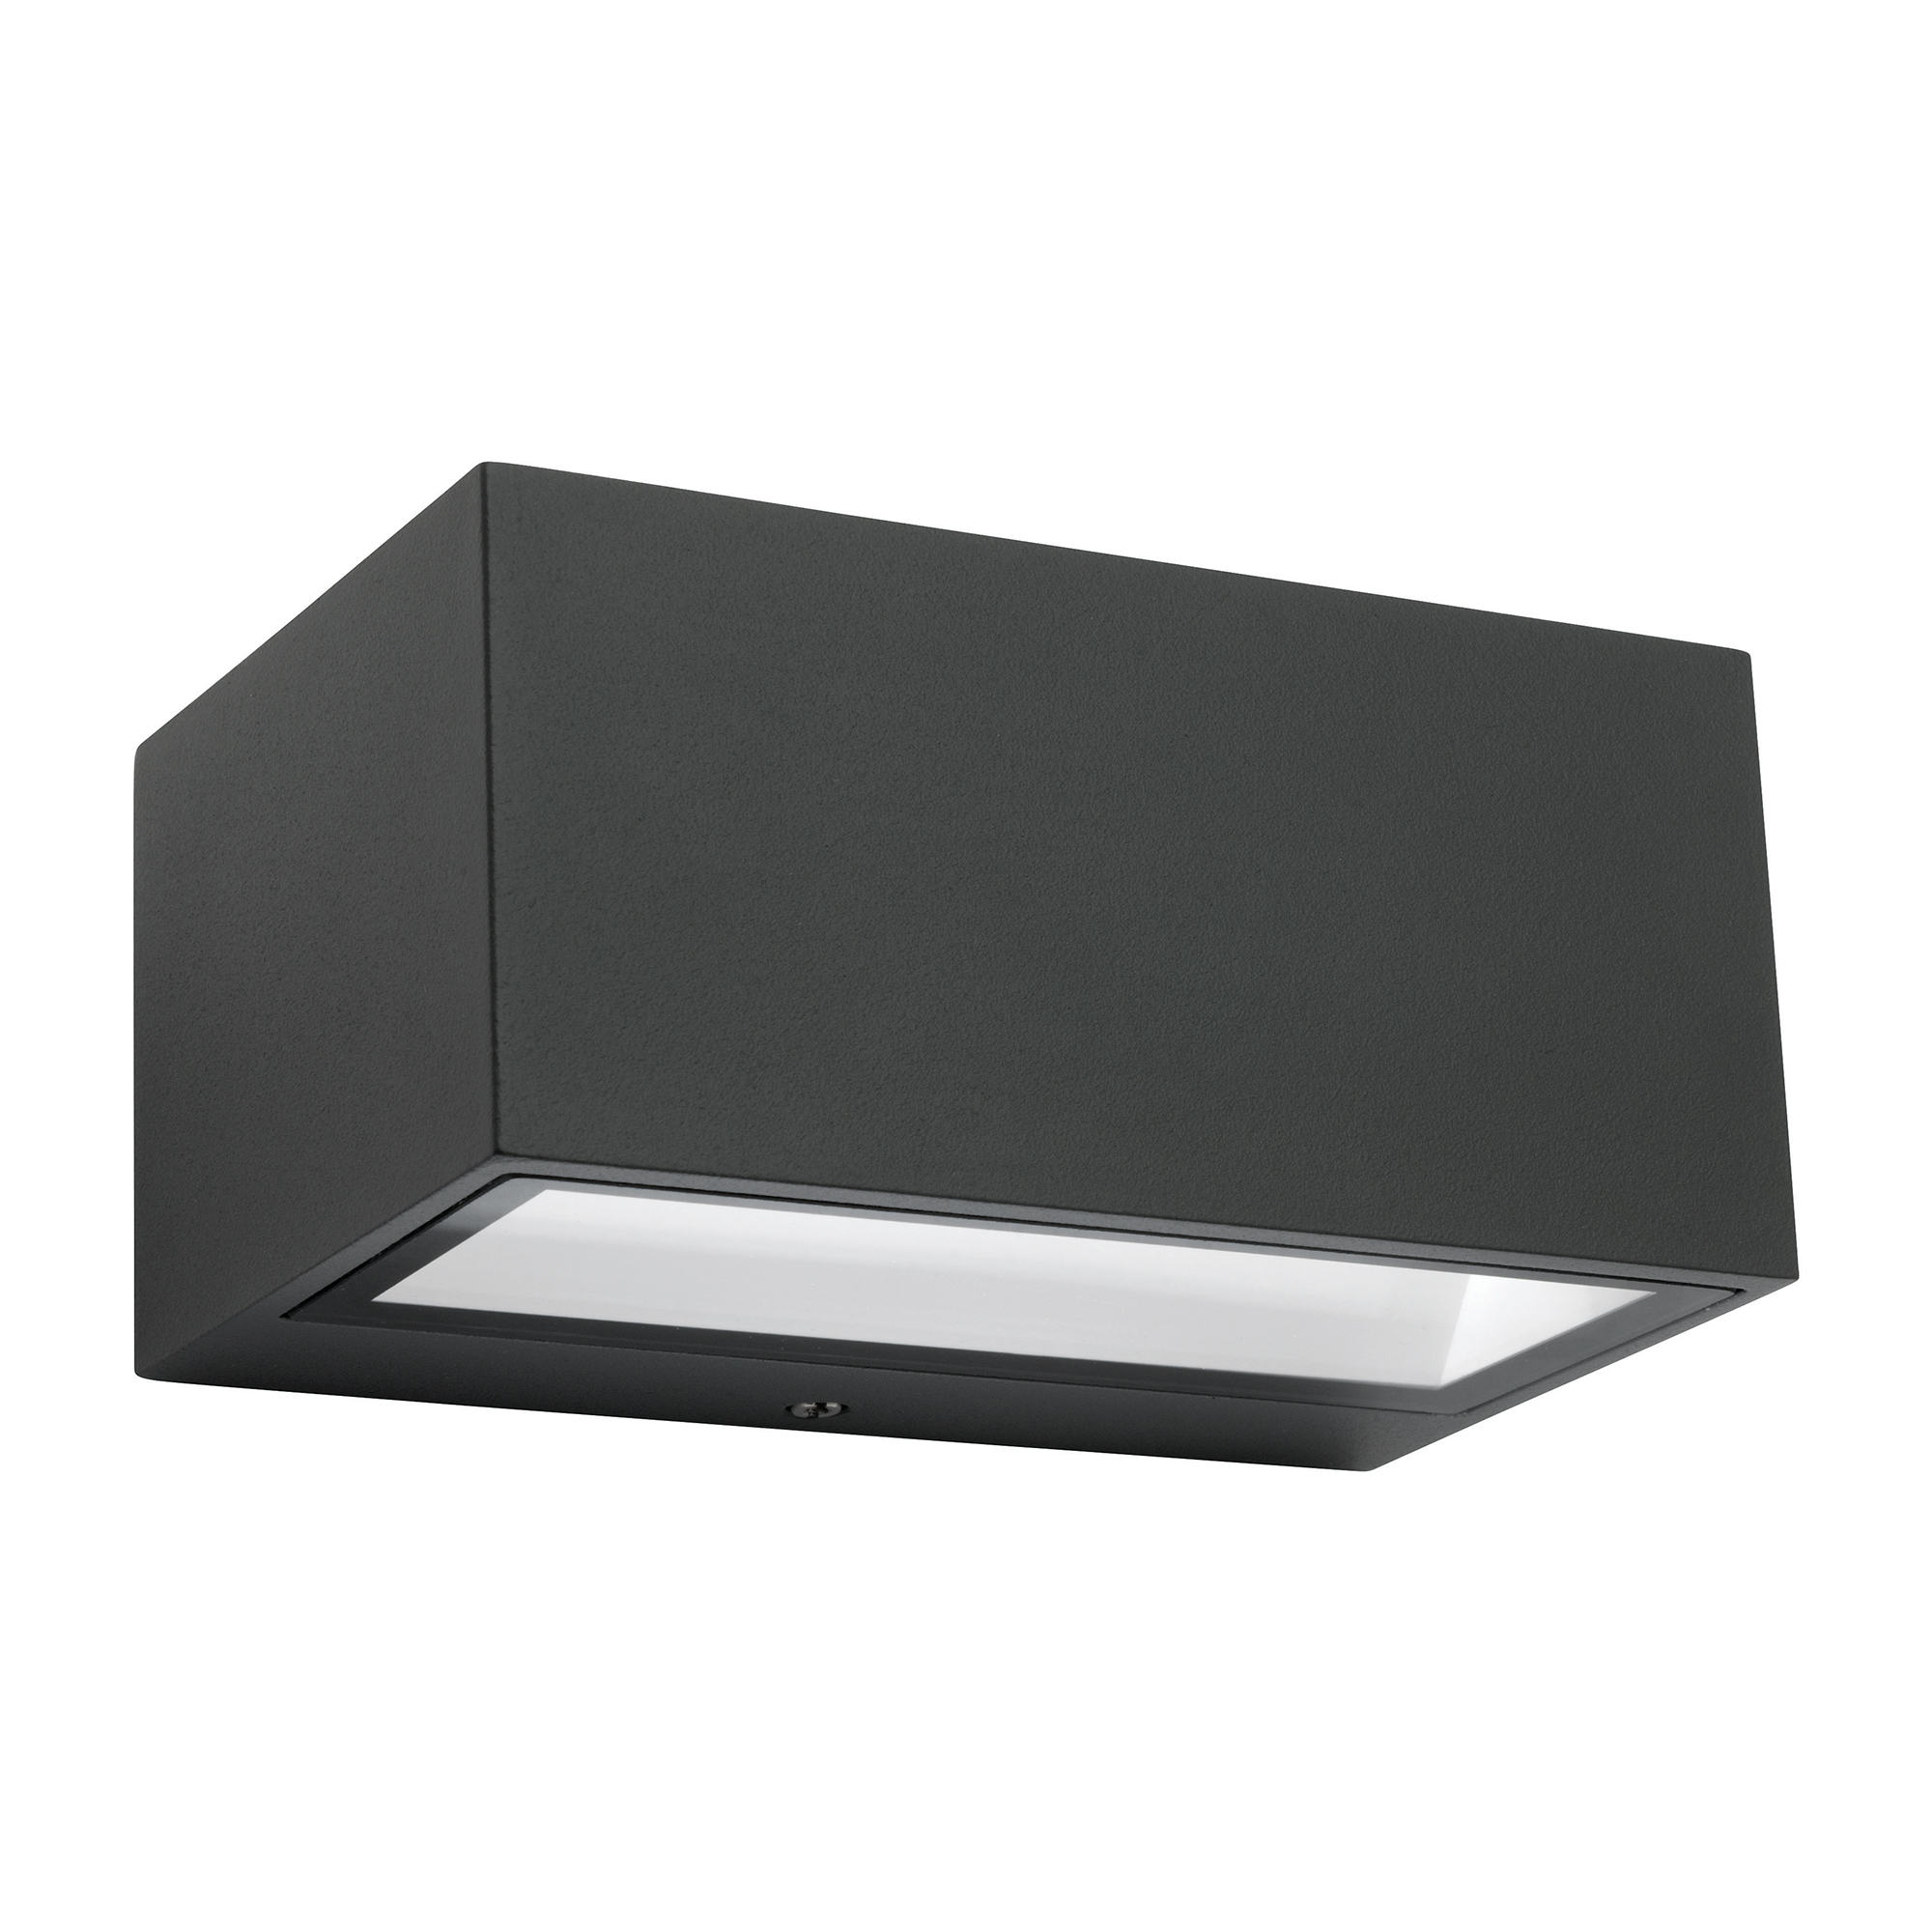 Cluny Outdoor Up and Down Wall Light image